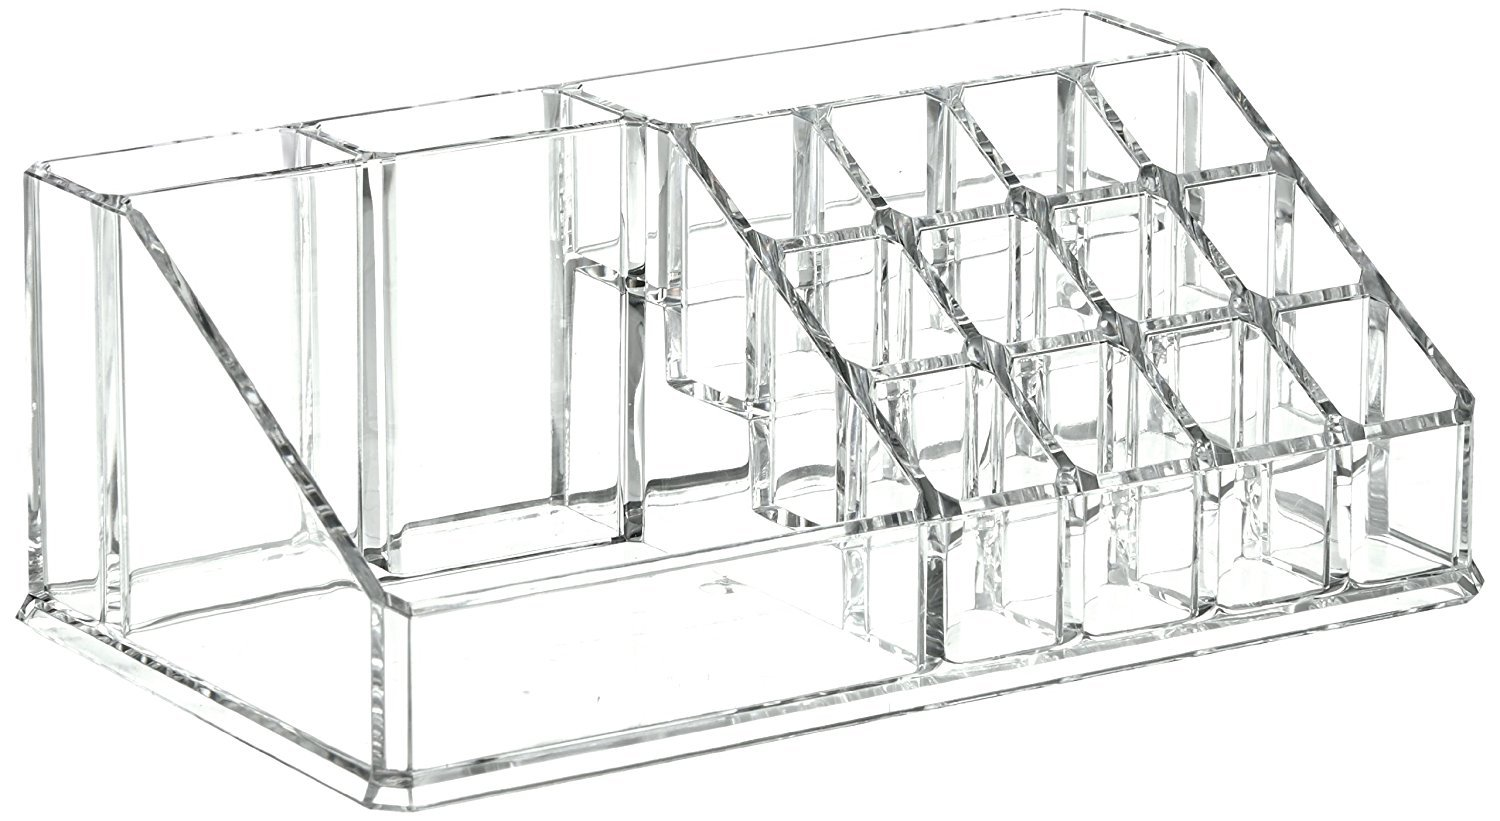 SZJH Premium Beauty Cosmetic and Lipstick Organiser Display Stand - Clear Acrylic - Great for Storing Nail Polish Varnish, Lipsticks, Makeup sets, Brushes, Jewellery, Earrings